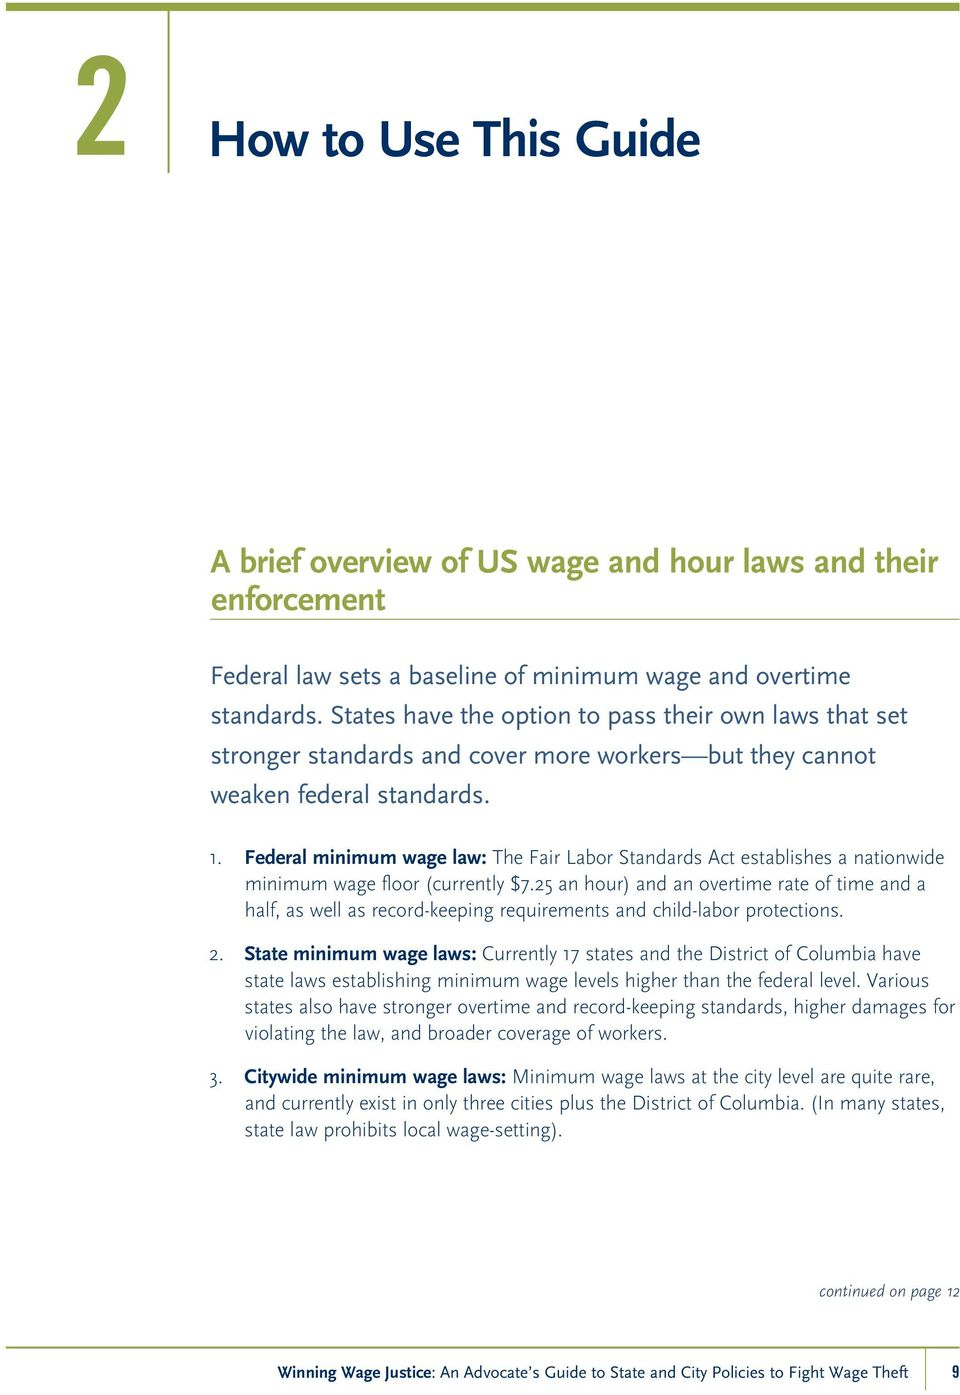 Federal minimum wage law: The Fair Labor Standards Act establishes a nationwide minimum wage floor (currently $7.